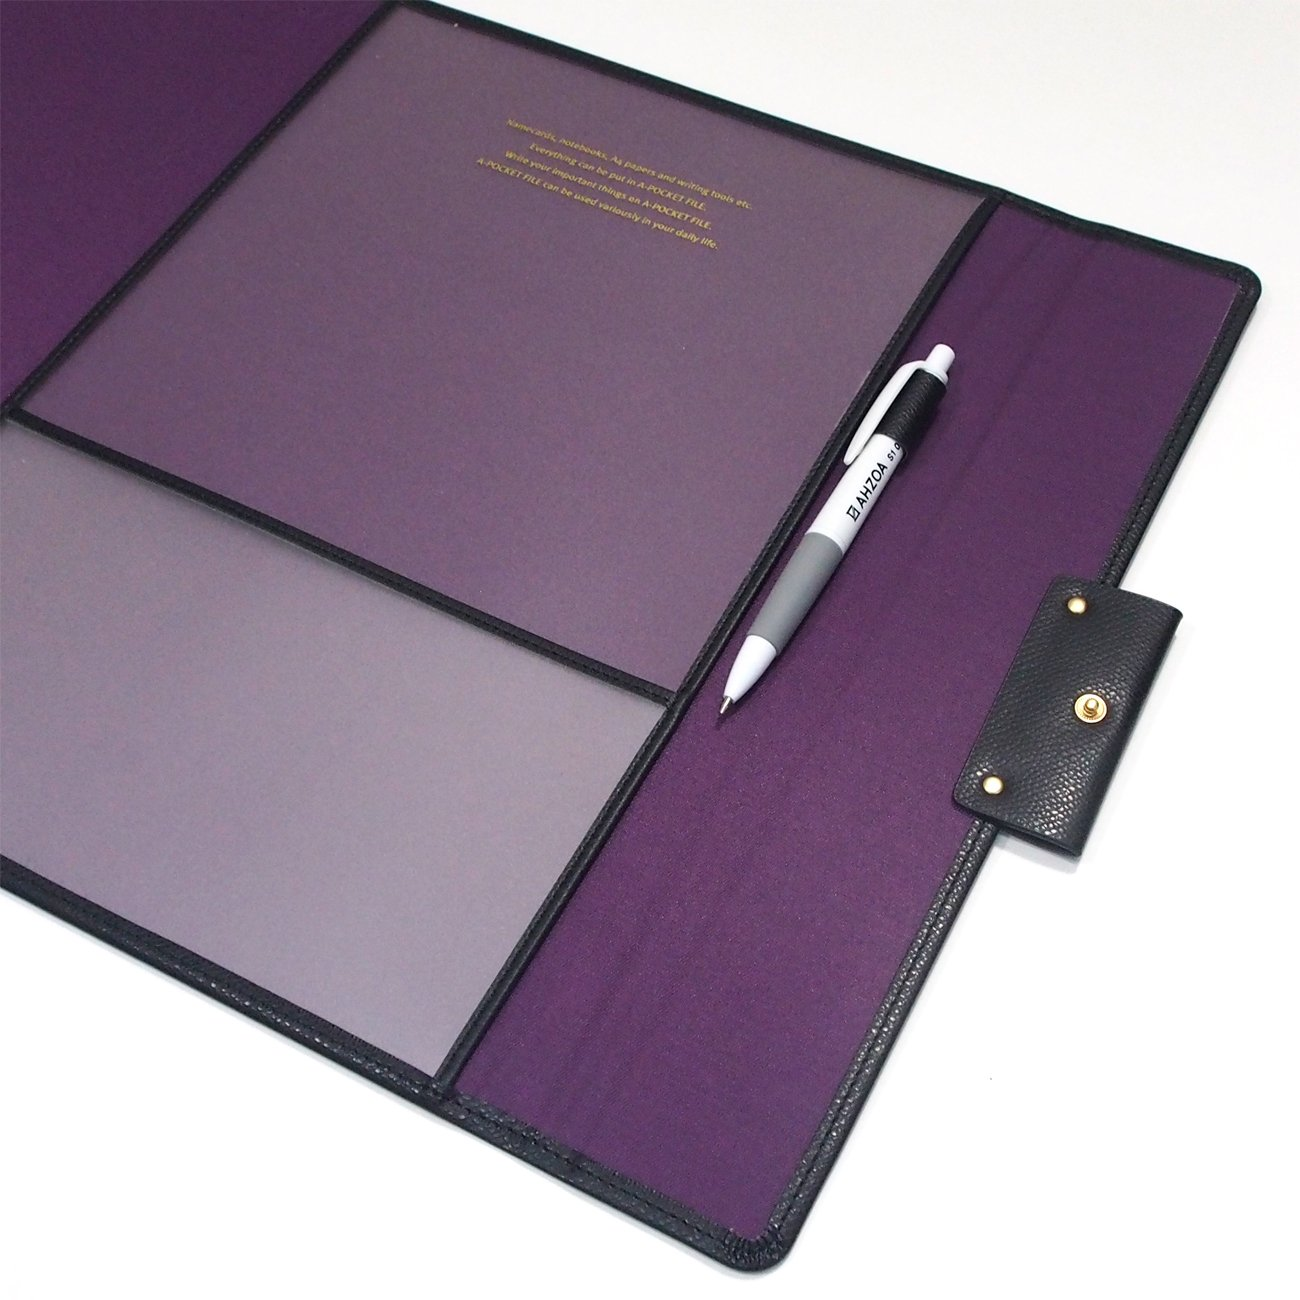 Grand Classy 8 Pockets File Holder with AHZOA Pencil (black) by Monopoly (Image #5)